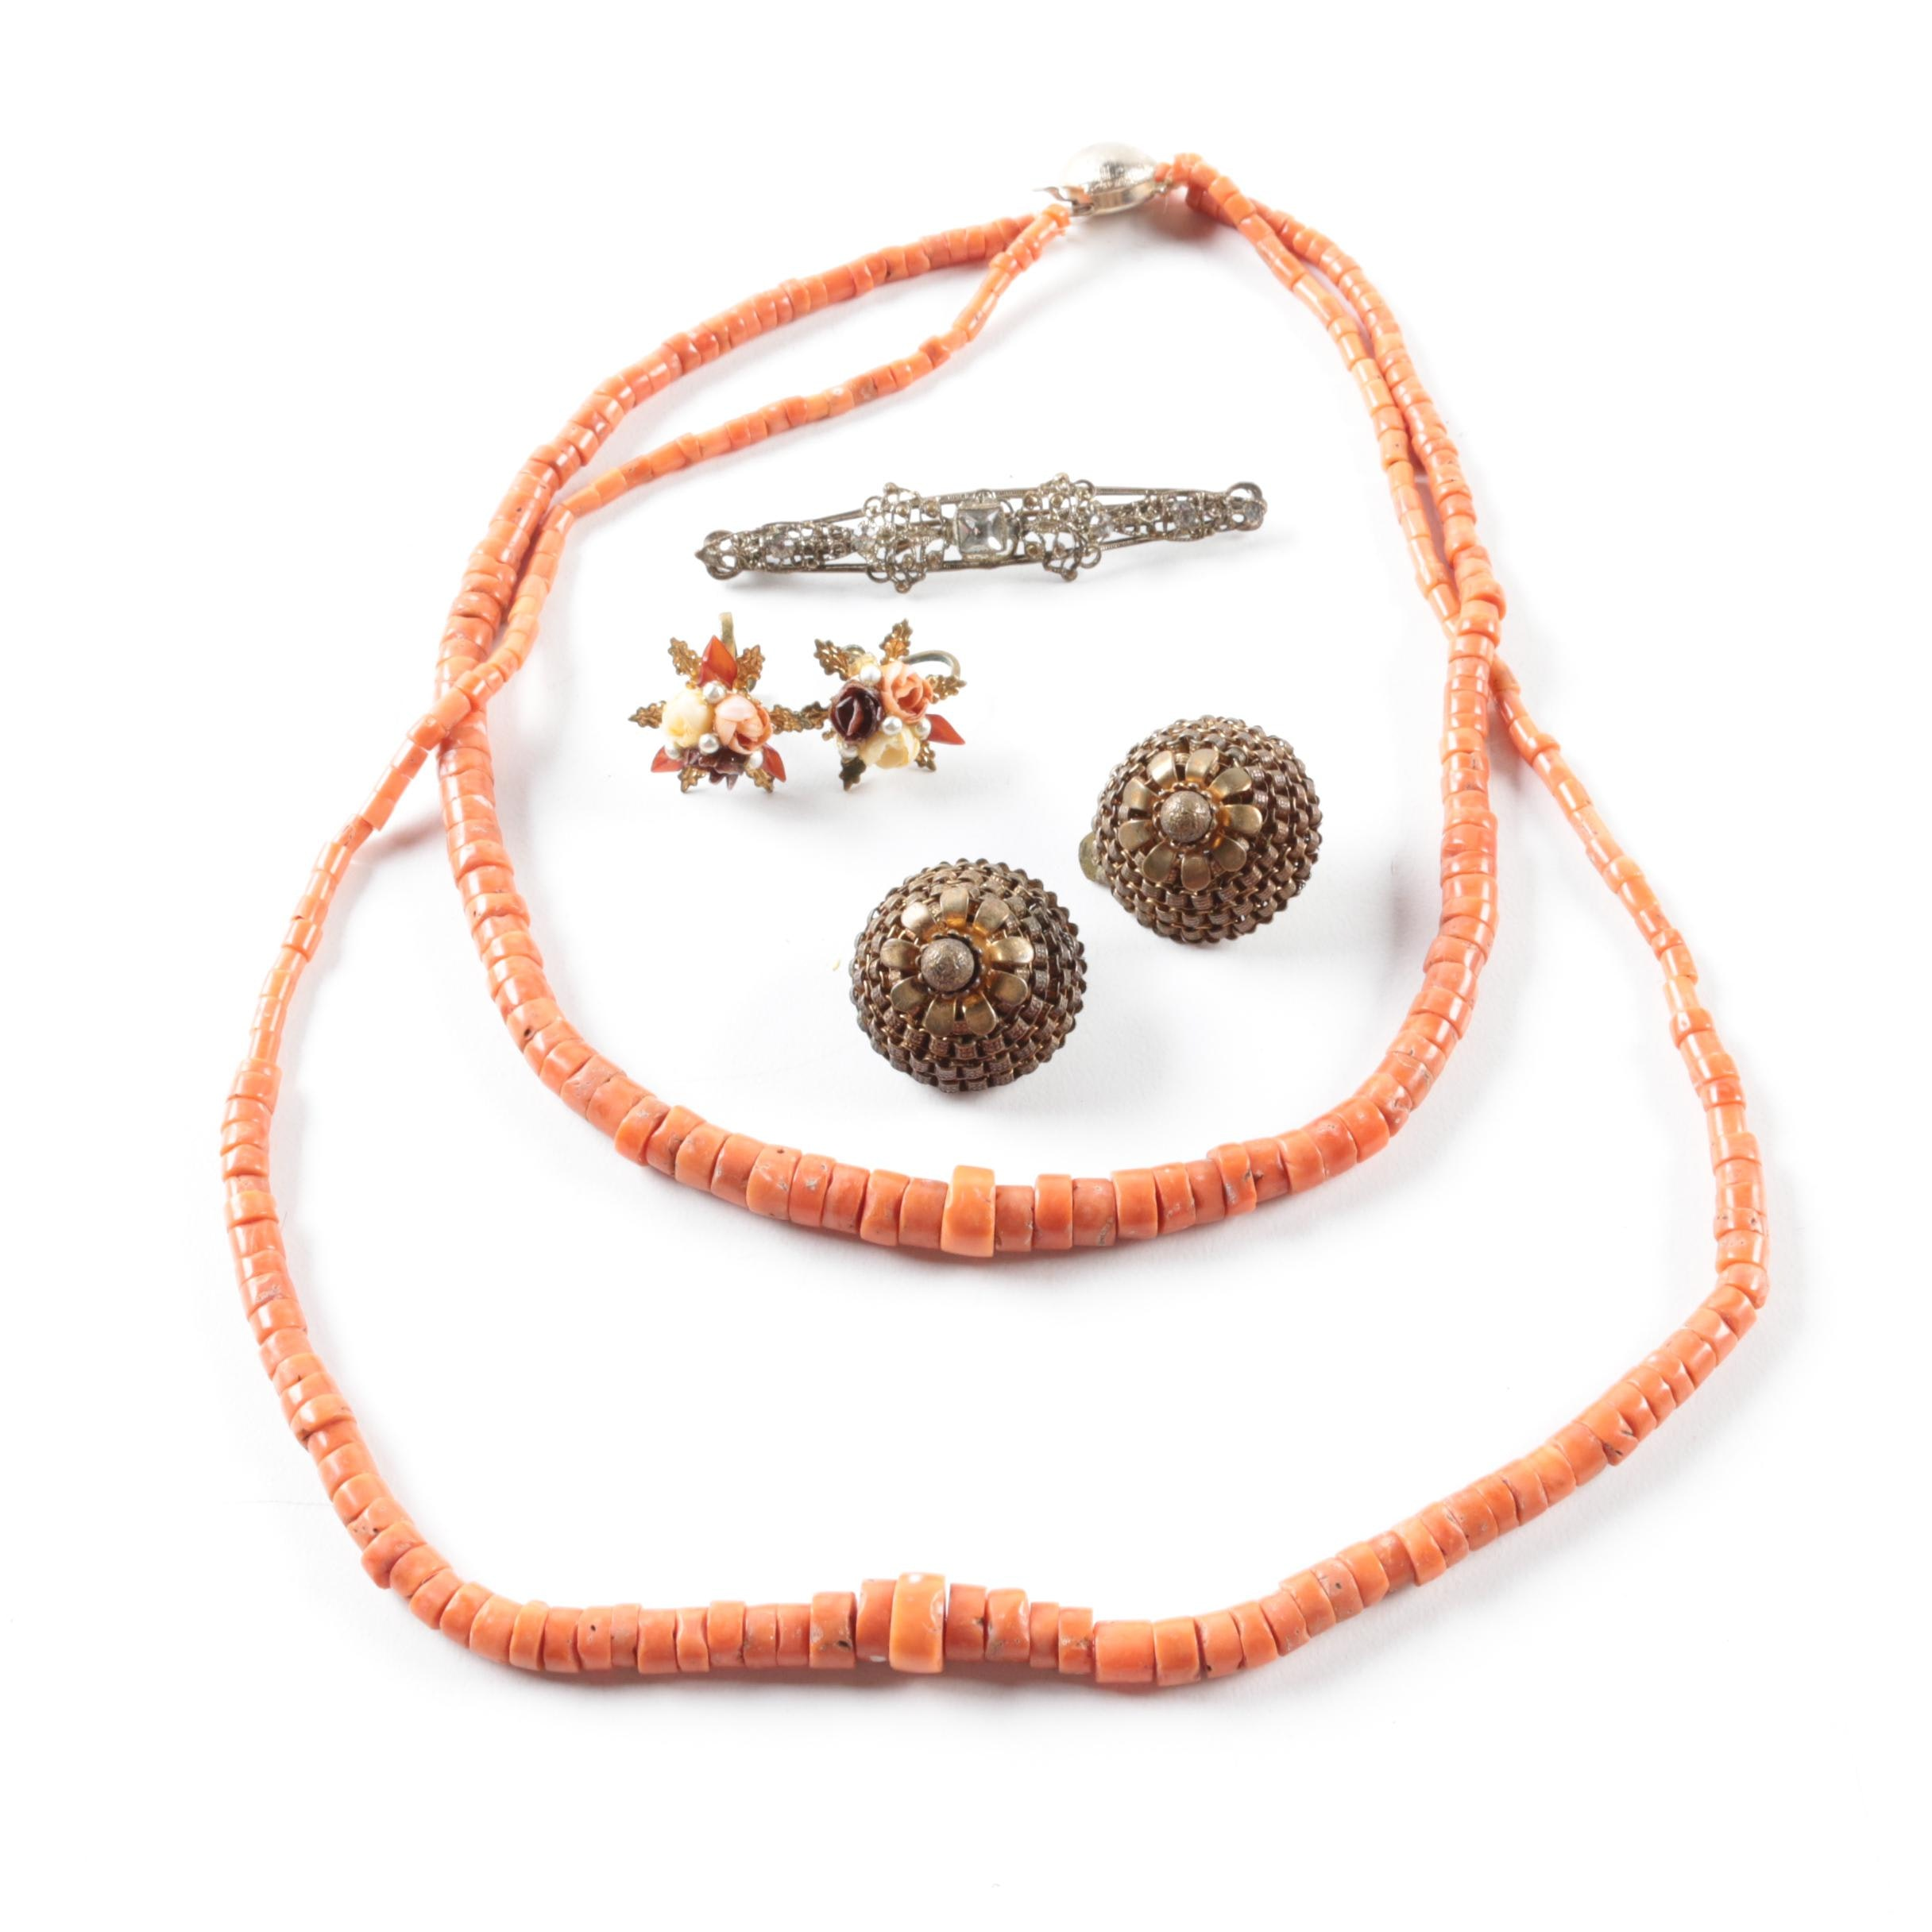 Costume Jewelry Selection Featuring Coral and Domed Miriam Haskell Earrings